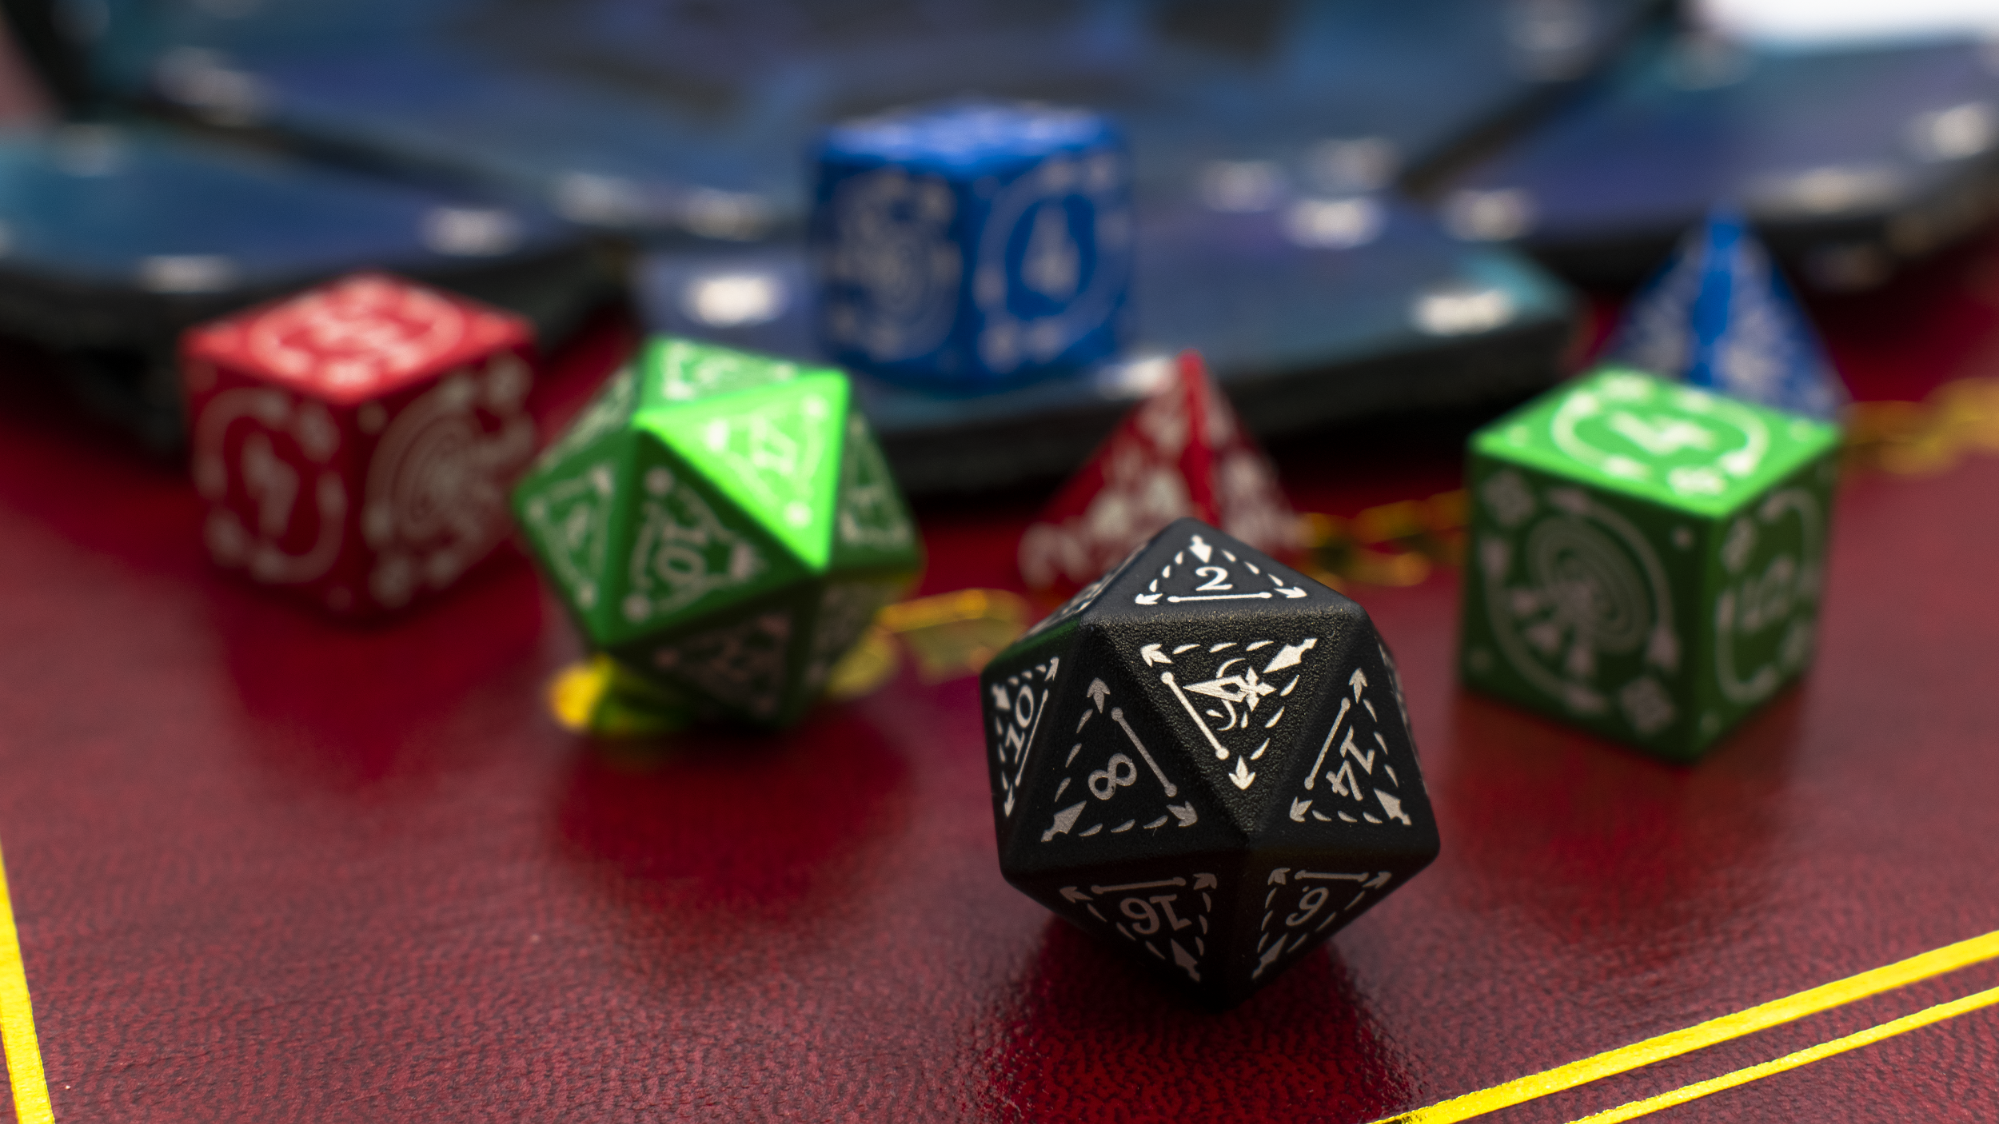 image of a set of rogue dice in colors black, green, red, and blue